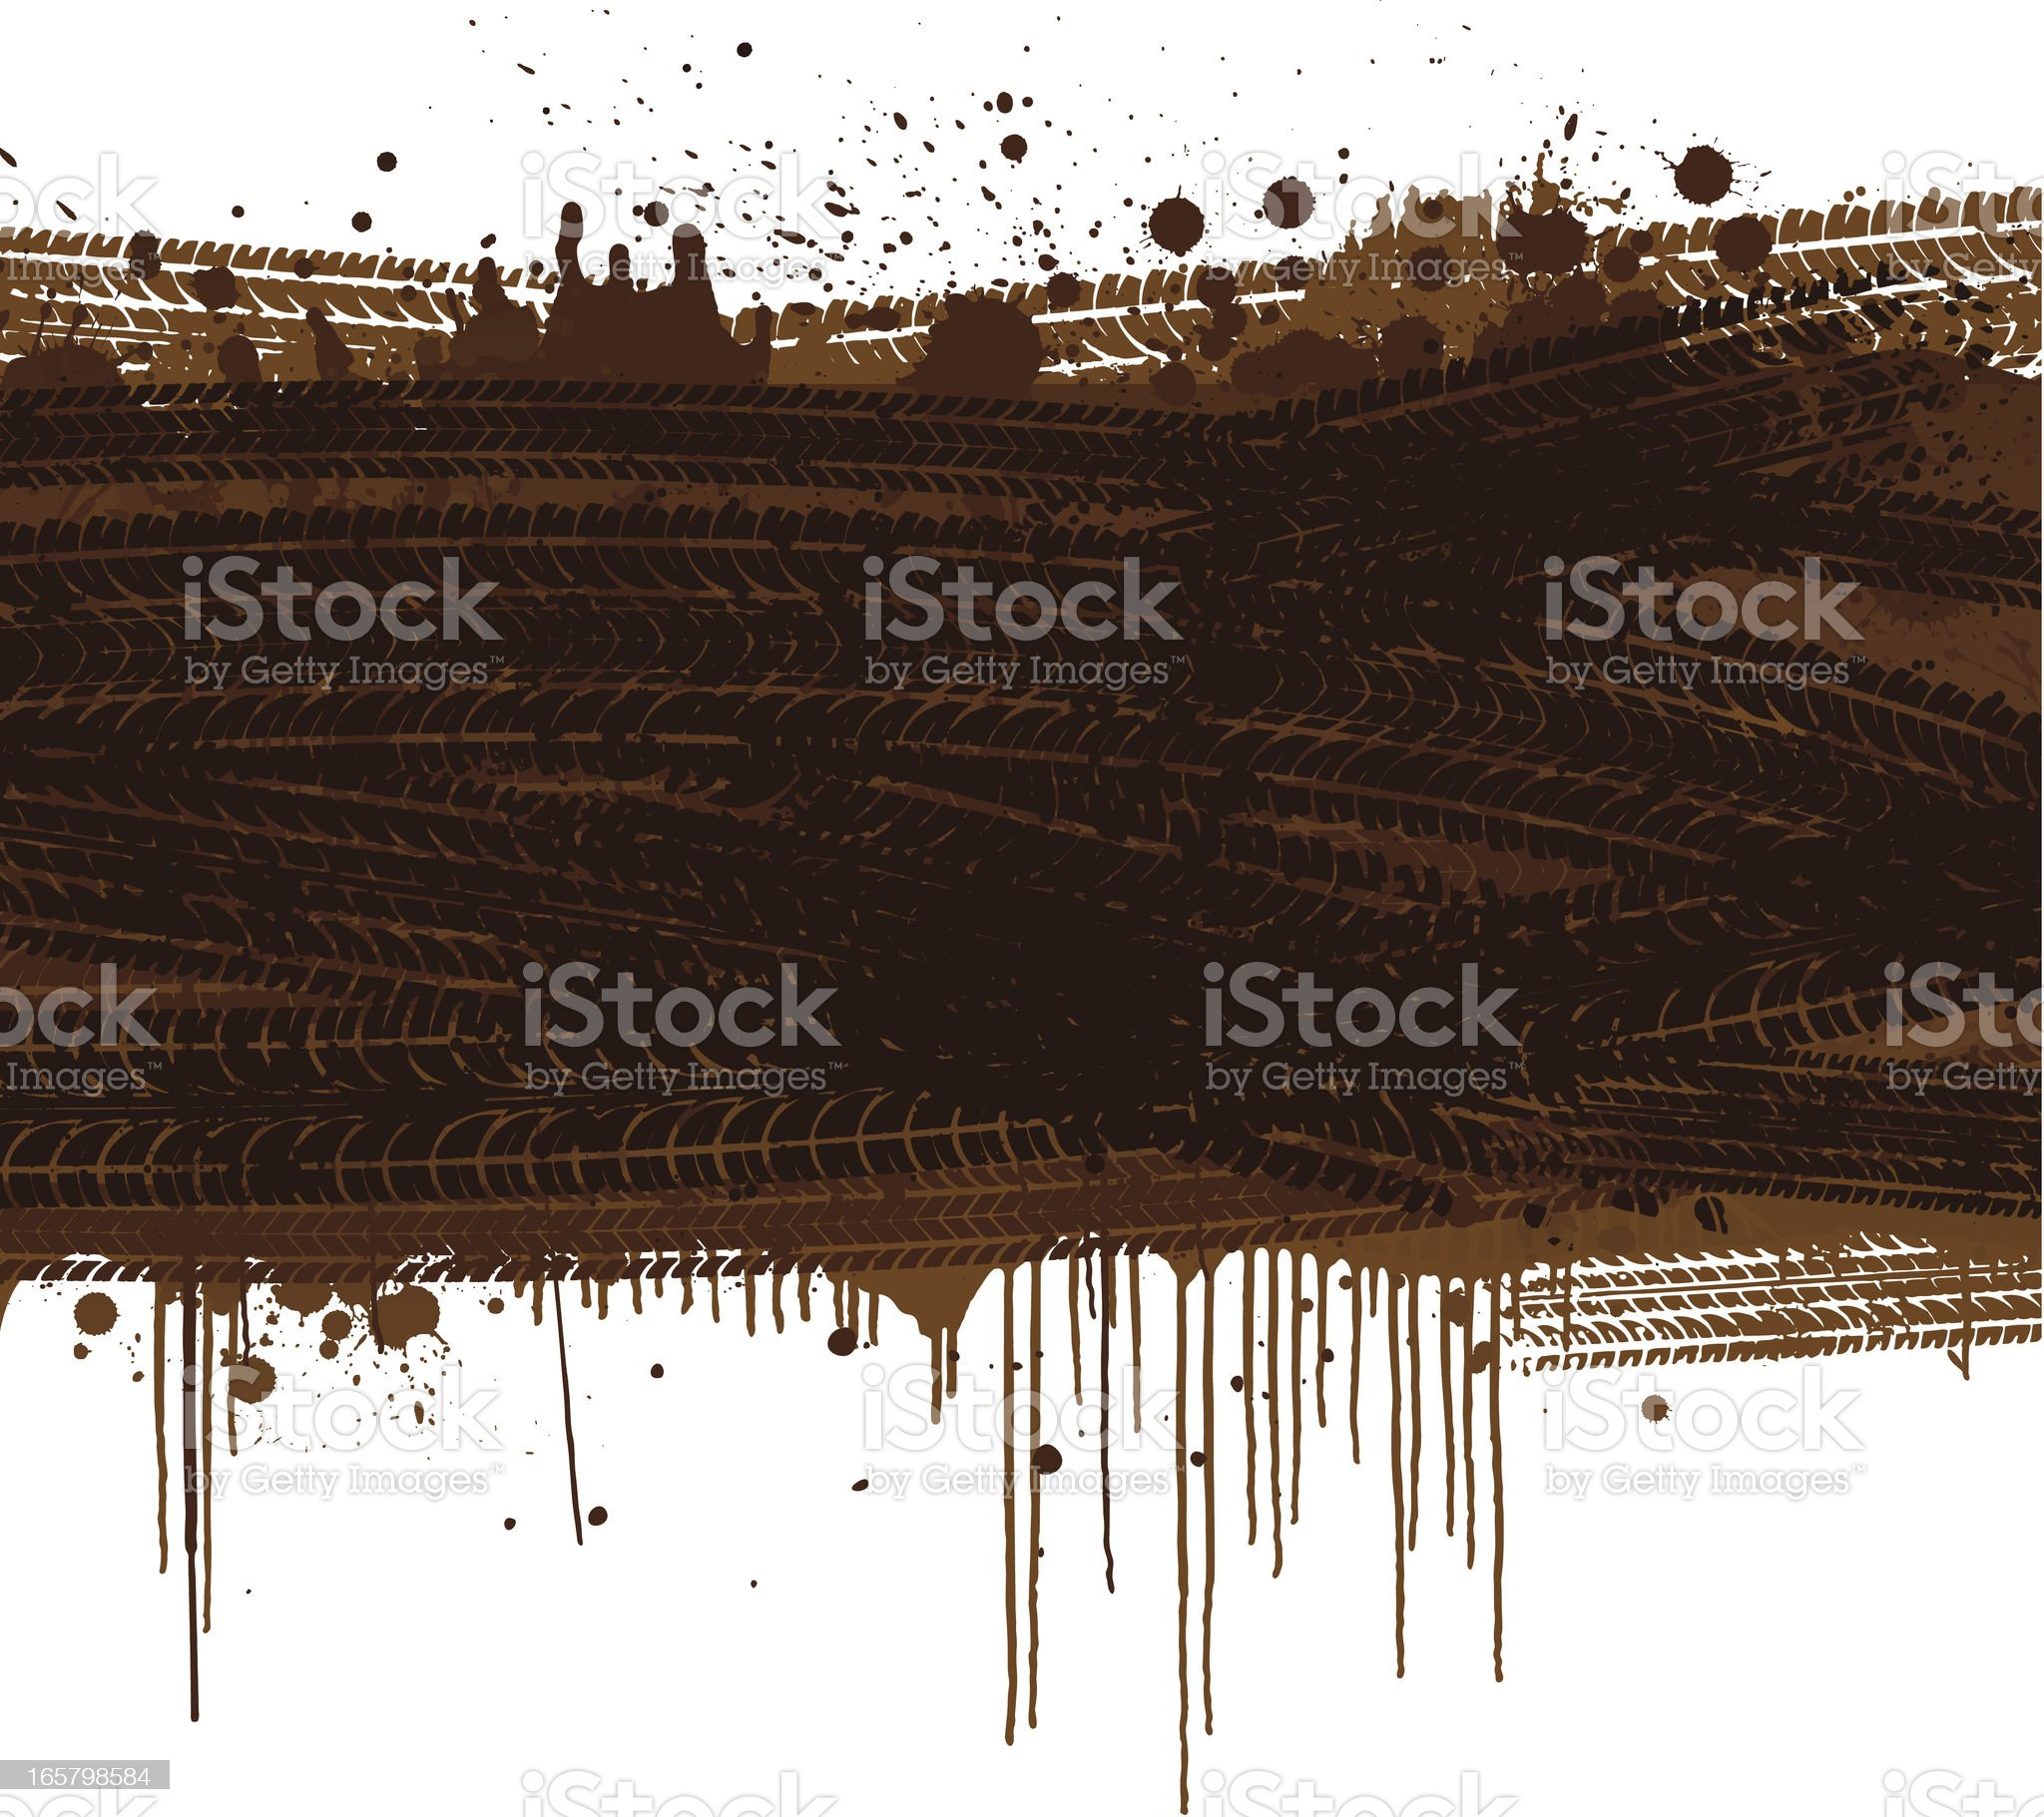 Muddy tracks background royalty-free stock vector art